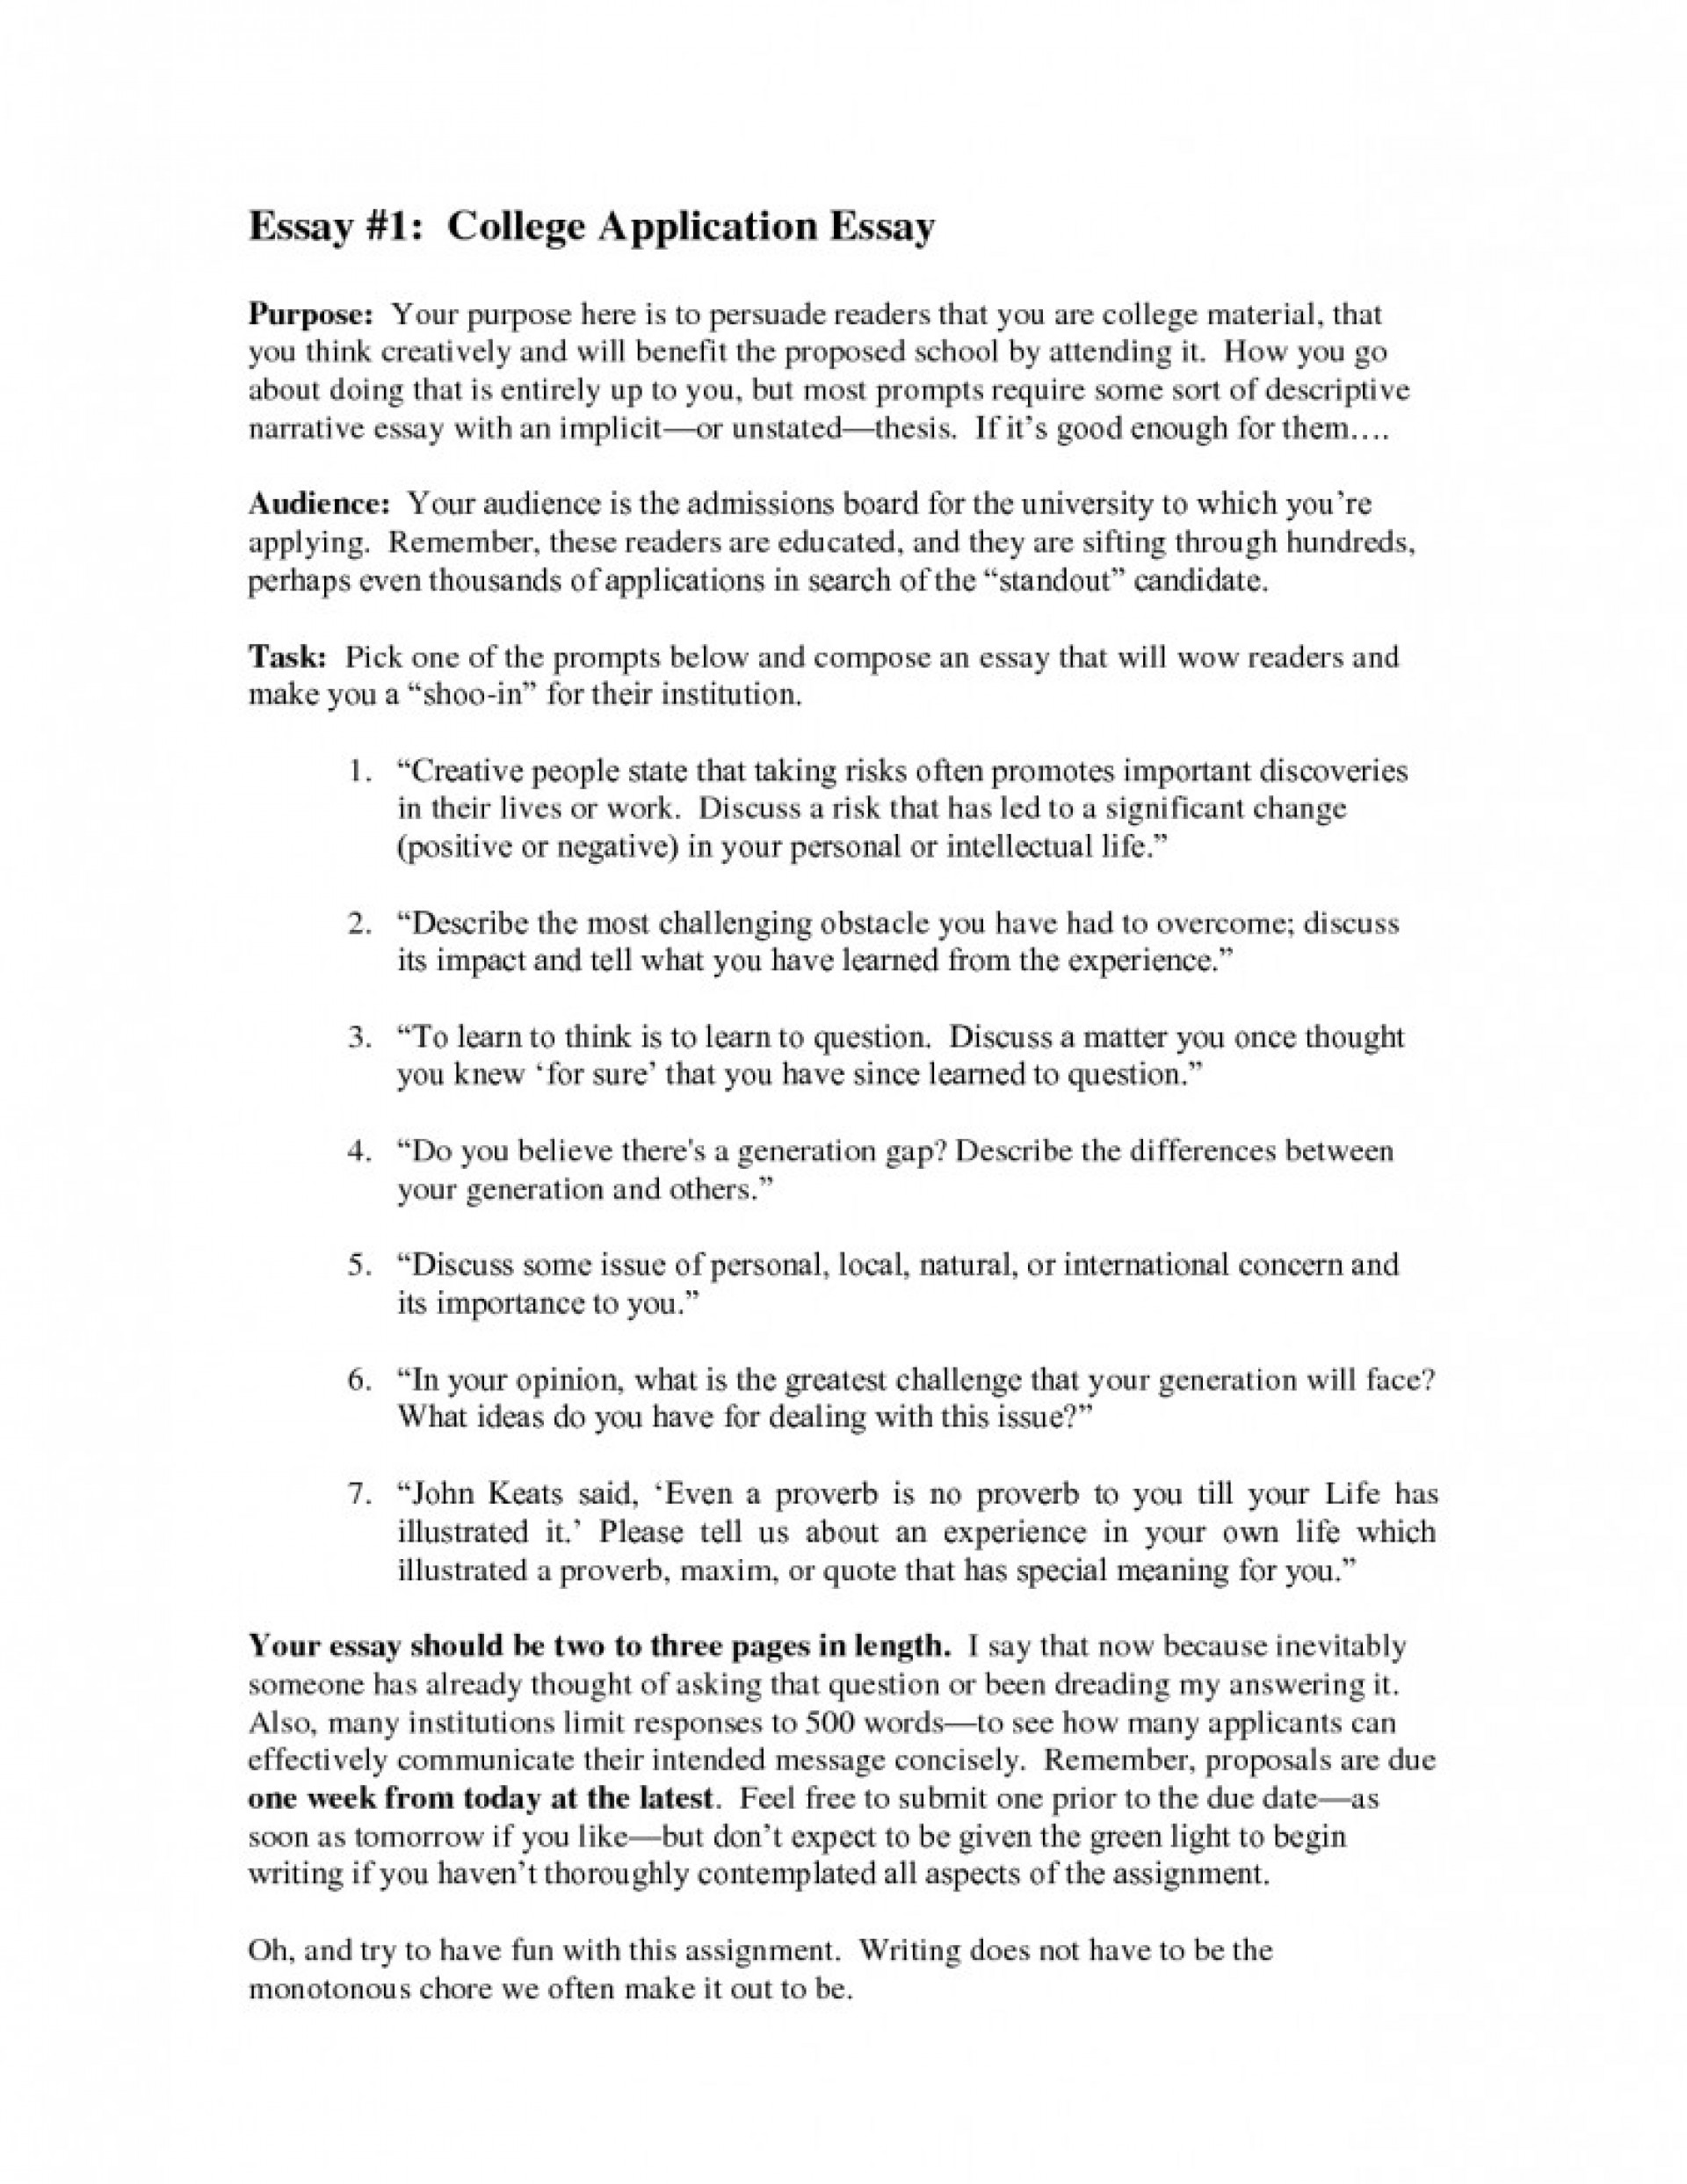 018 College Prompt Essay Examples Example Application Unique 1 Prompts 1920